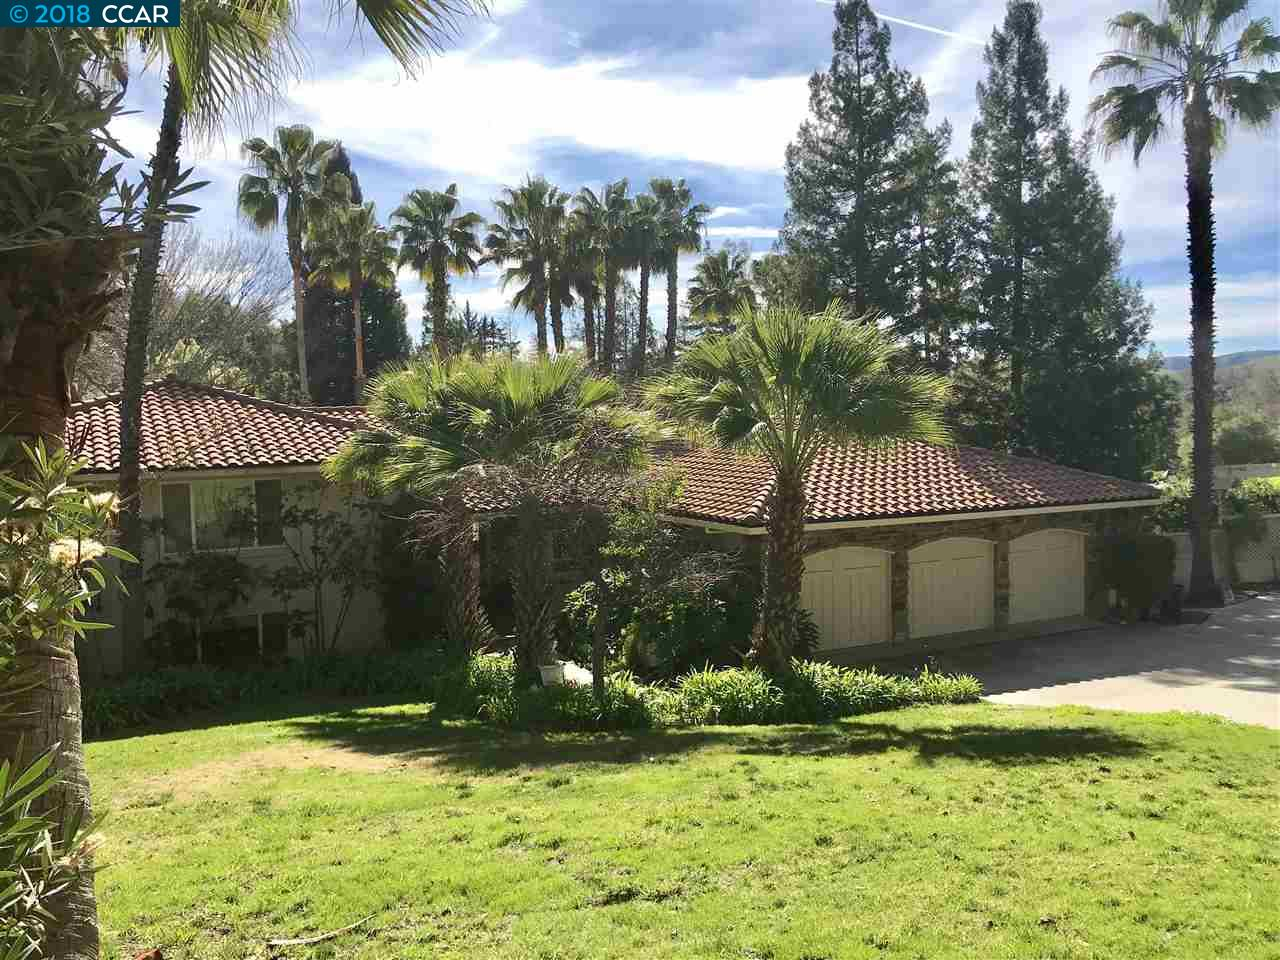 Single Family Home for Sale at 2315 CABALLO RANCHERO 2315 CABALLO RANCHERO Diablo, California 94528 United States